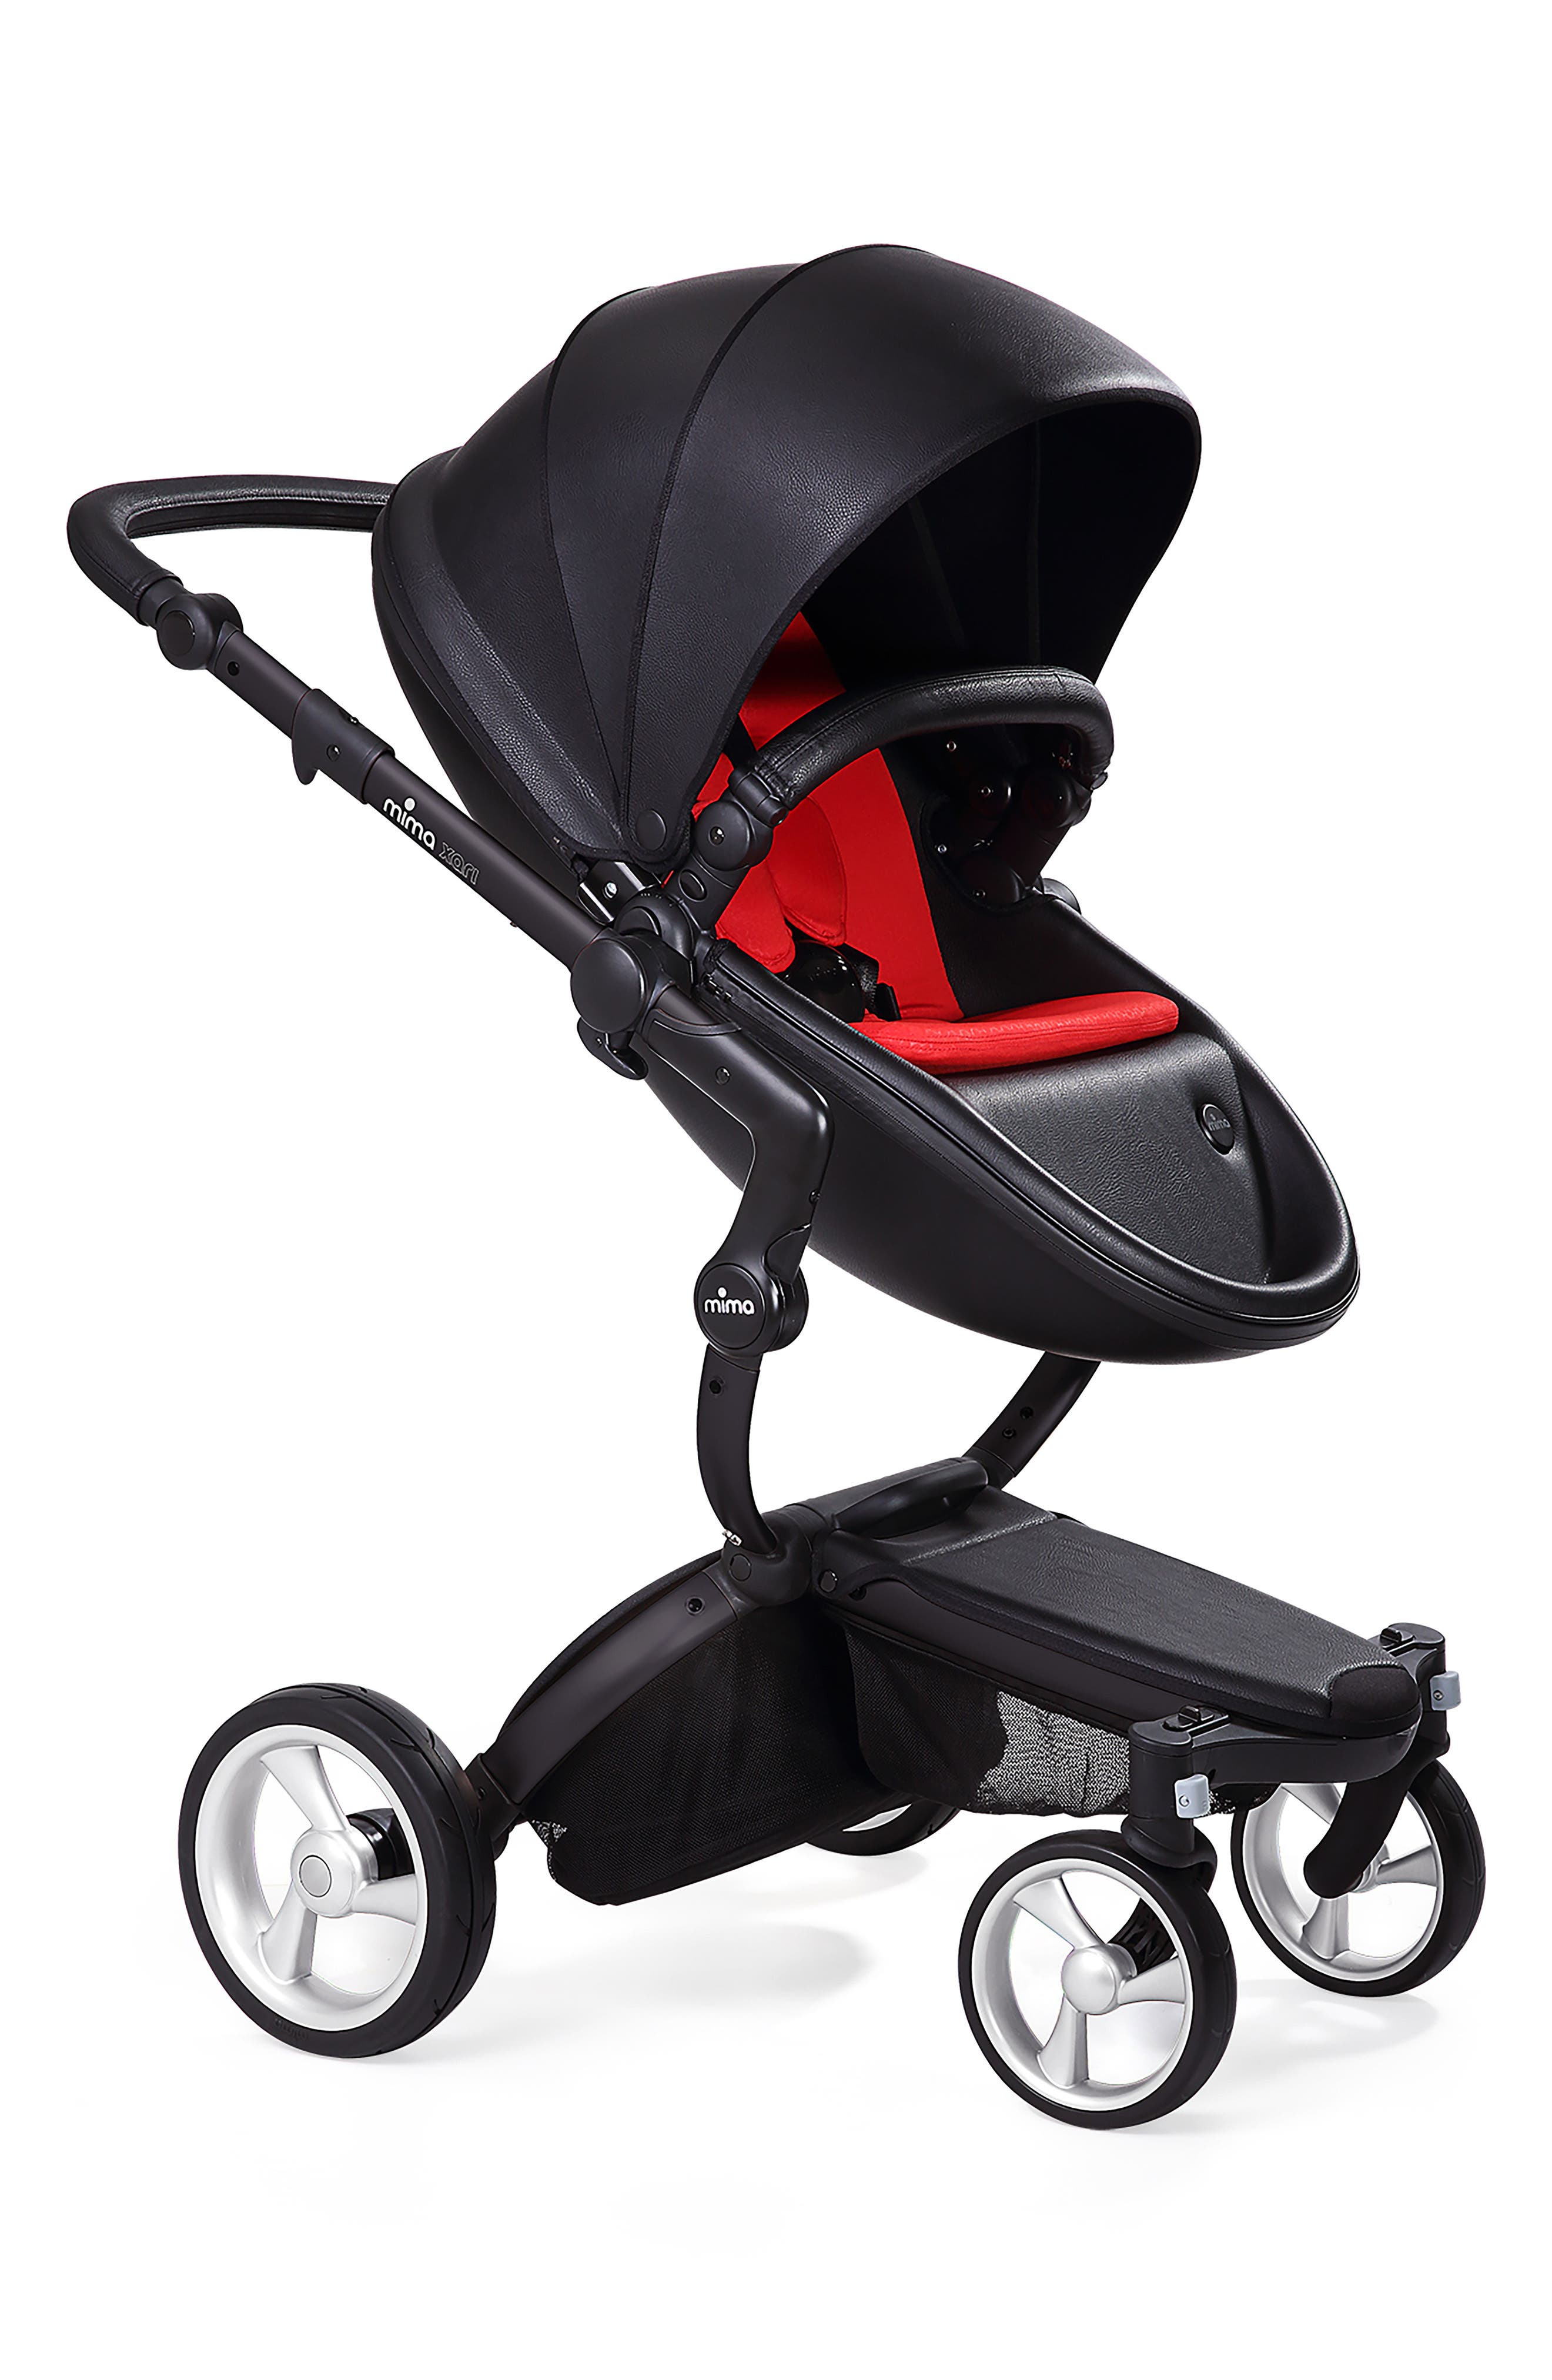 Alternate Image 1 Selected - Mima Xari Black Chassis Stroller with Reversible Reclining Seat & Carrycot